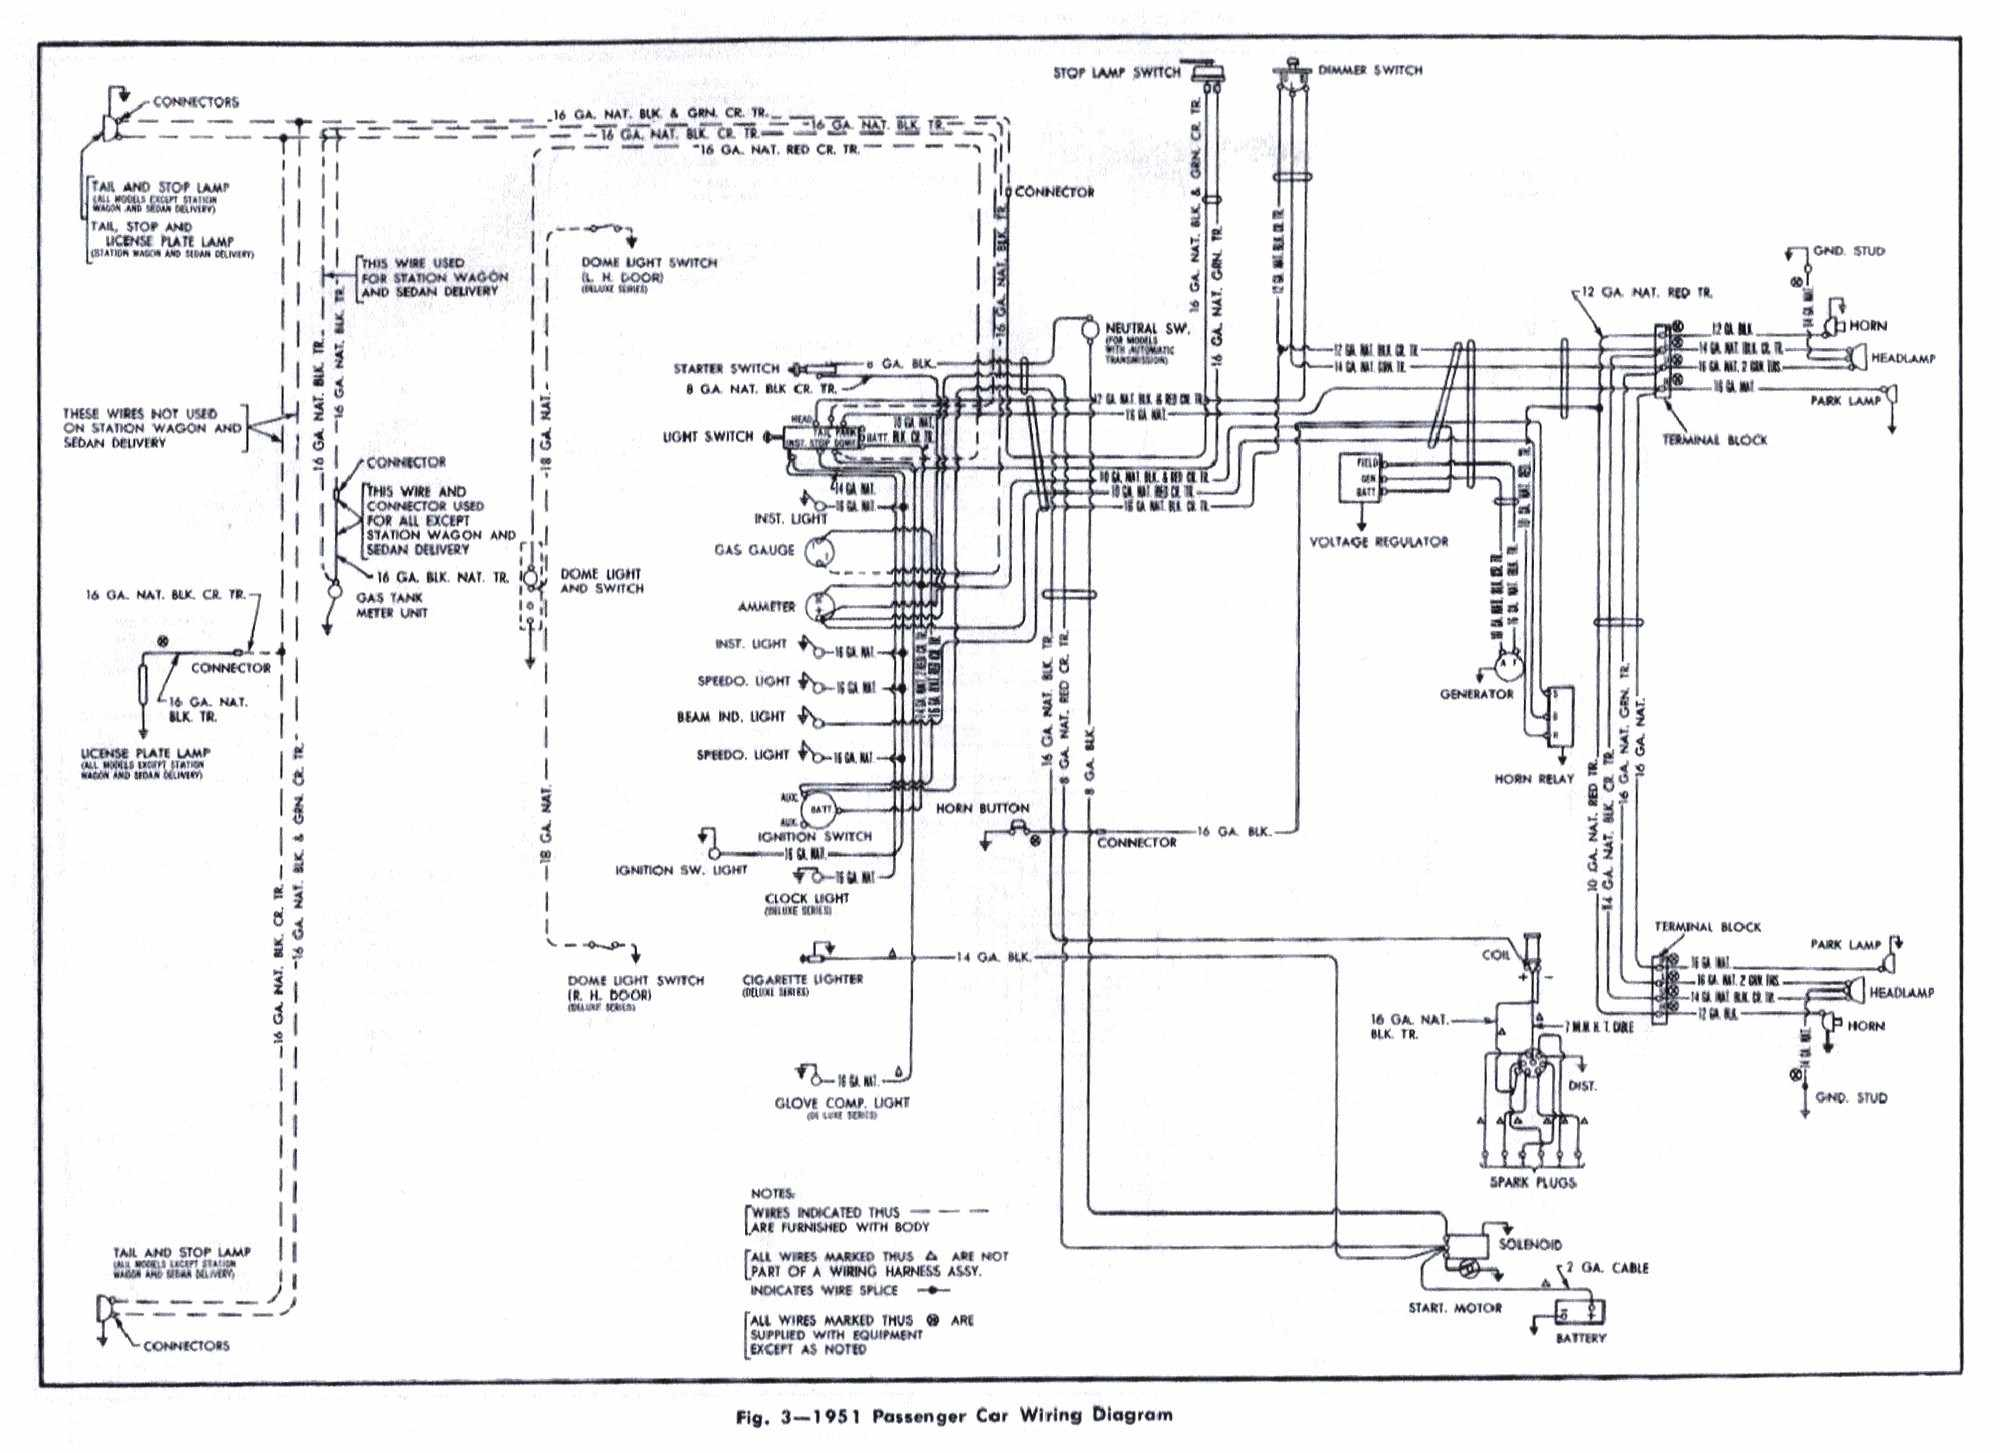 1951 ford car wiring diagrams wiring diagram for light switch u2022 rh drnatnews com 1951 ford custom wiring harness 1951 ford f1 wiring harness